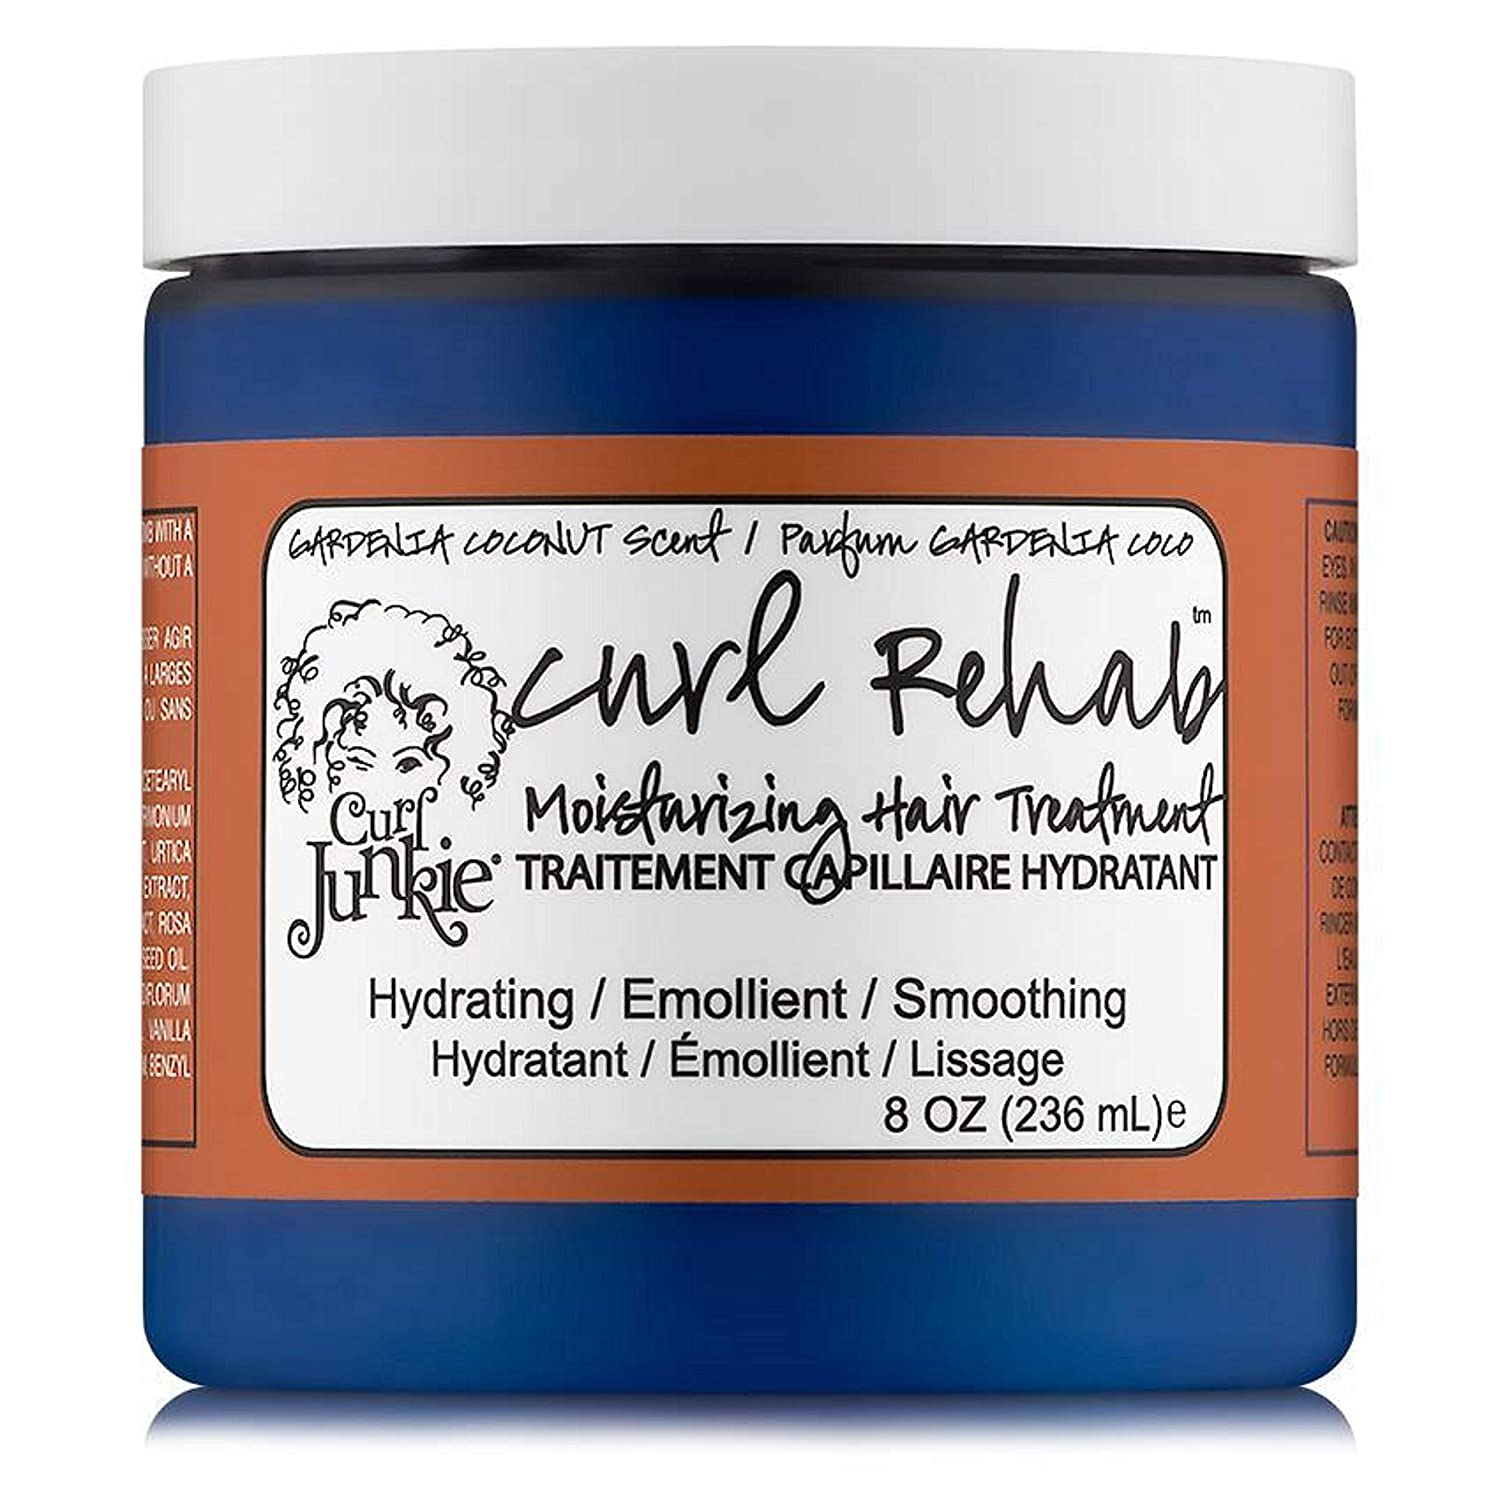 Curl Junkie Curl Rehab Moisturizing Hair Treatment, Gardenia-Coconut Scent, 8 oz.